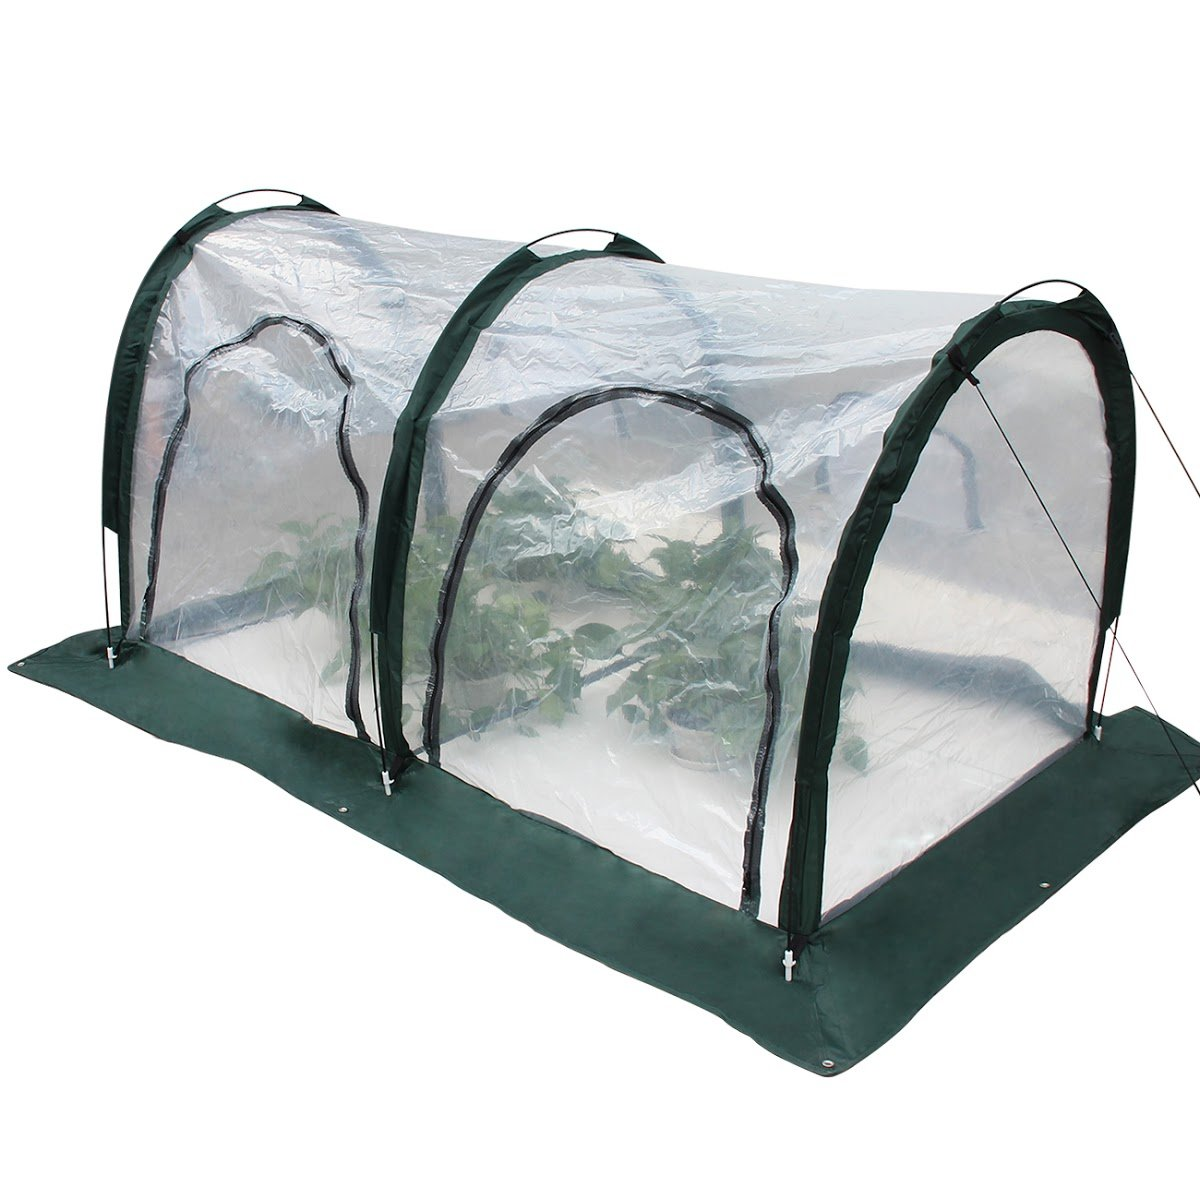 TargetEvo 78''x39''x39'' Warm Transparent Greenhouse with Foldable Tunnel Bird Prevent Cover for Indoor & Outdoor Gardening Plants